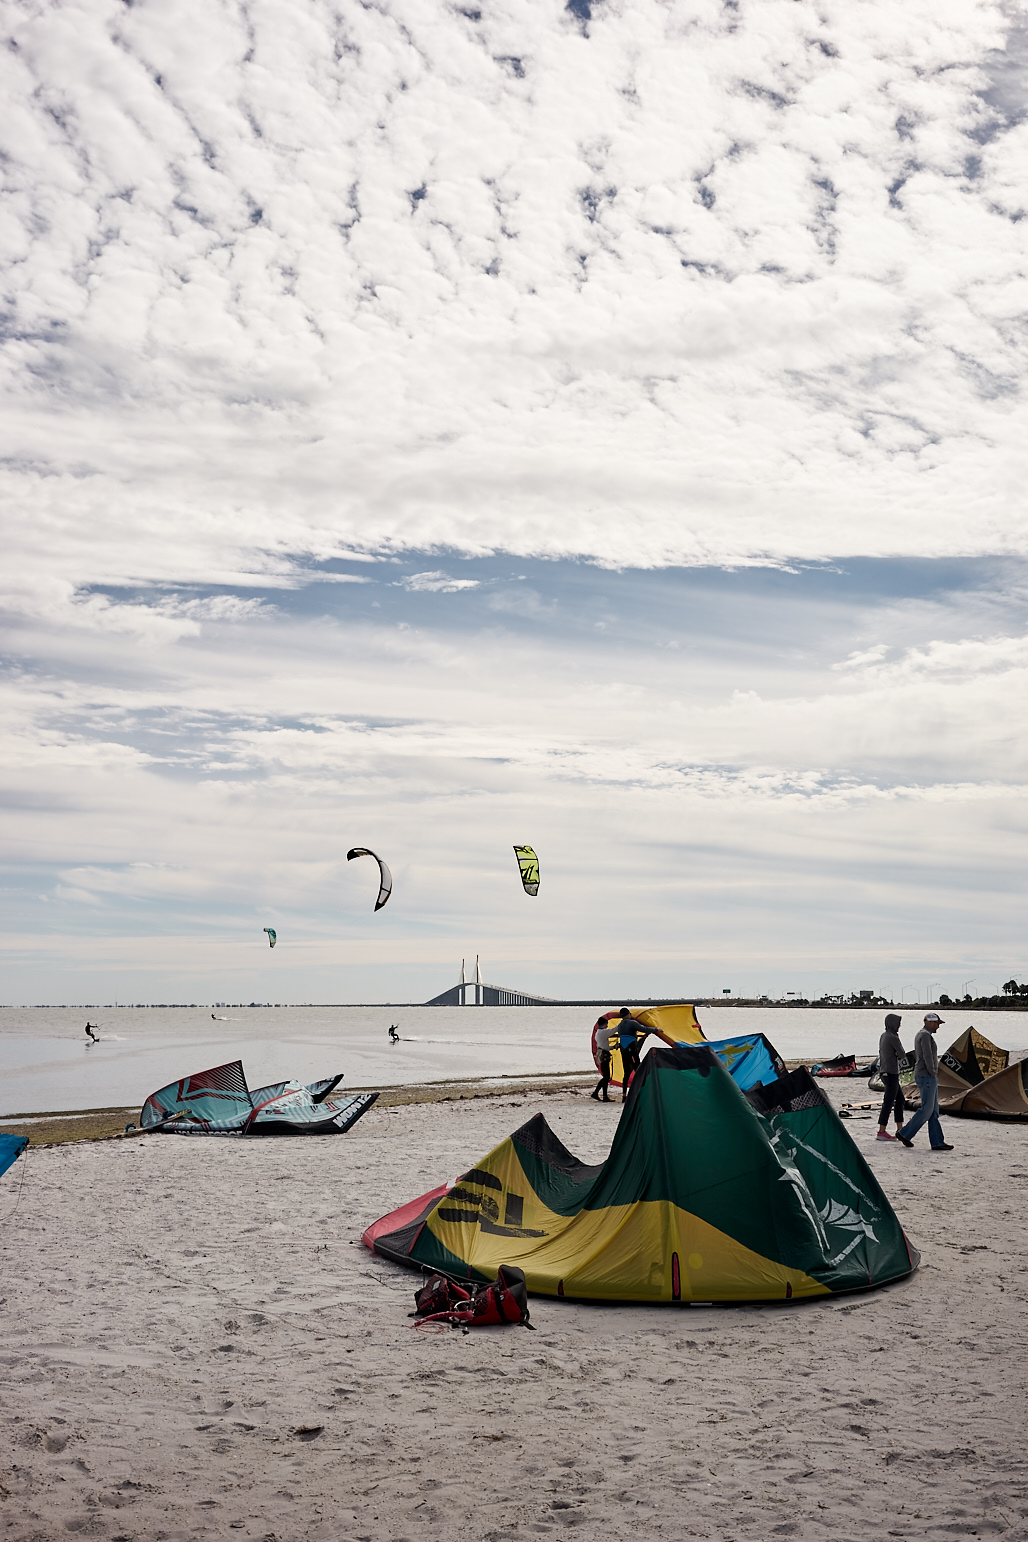 kitesurfing_kiteboarding_tampa_bay_florida_jose_romero_wordintown_DSC04041